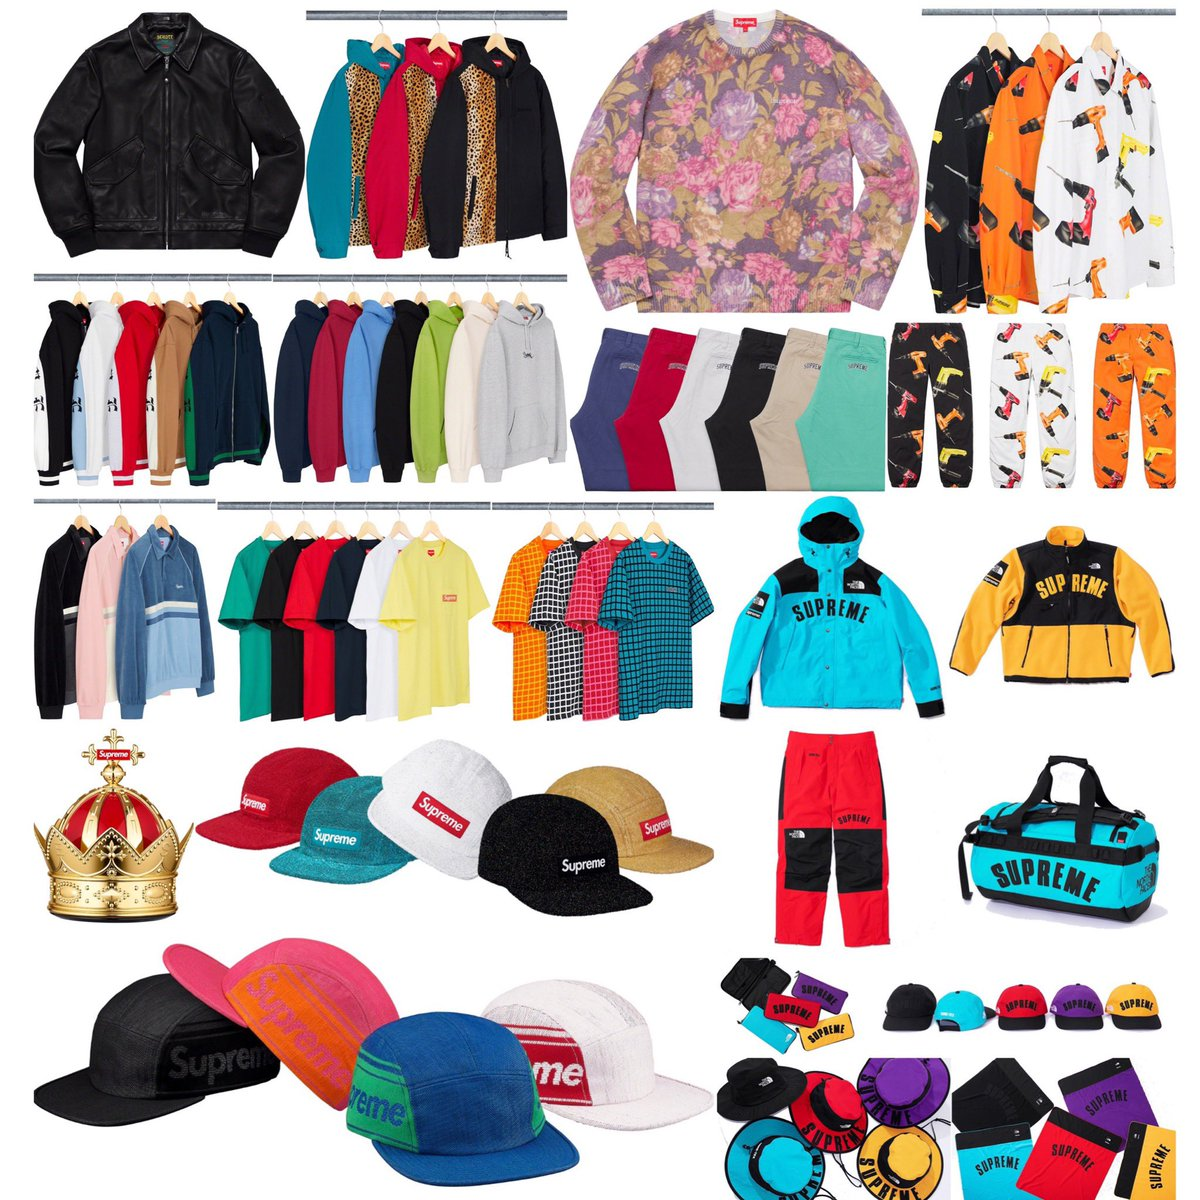 5b27b1c9a944 Supreme Week 5 Droplist Highlight by The North Face Collab All of this is  set to drop this Thursday March 28th at 11am eastern. Will share retails  later ...